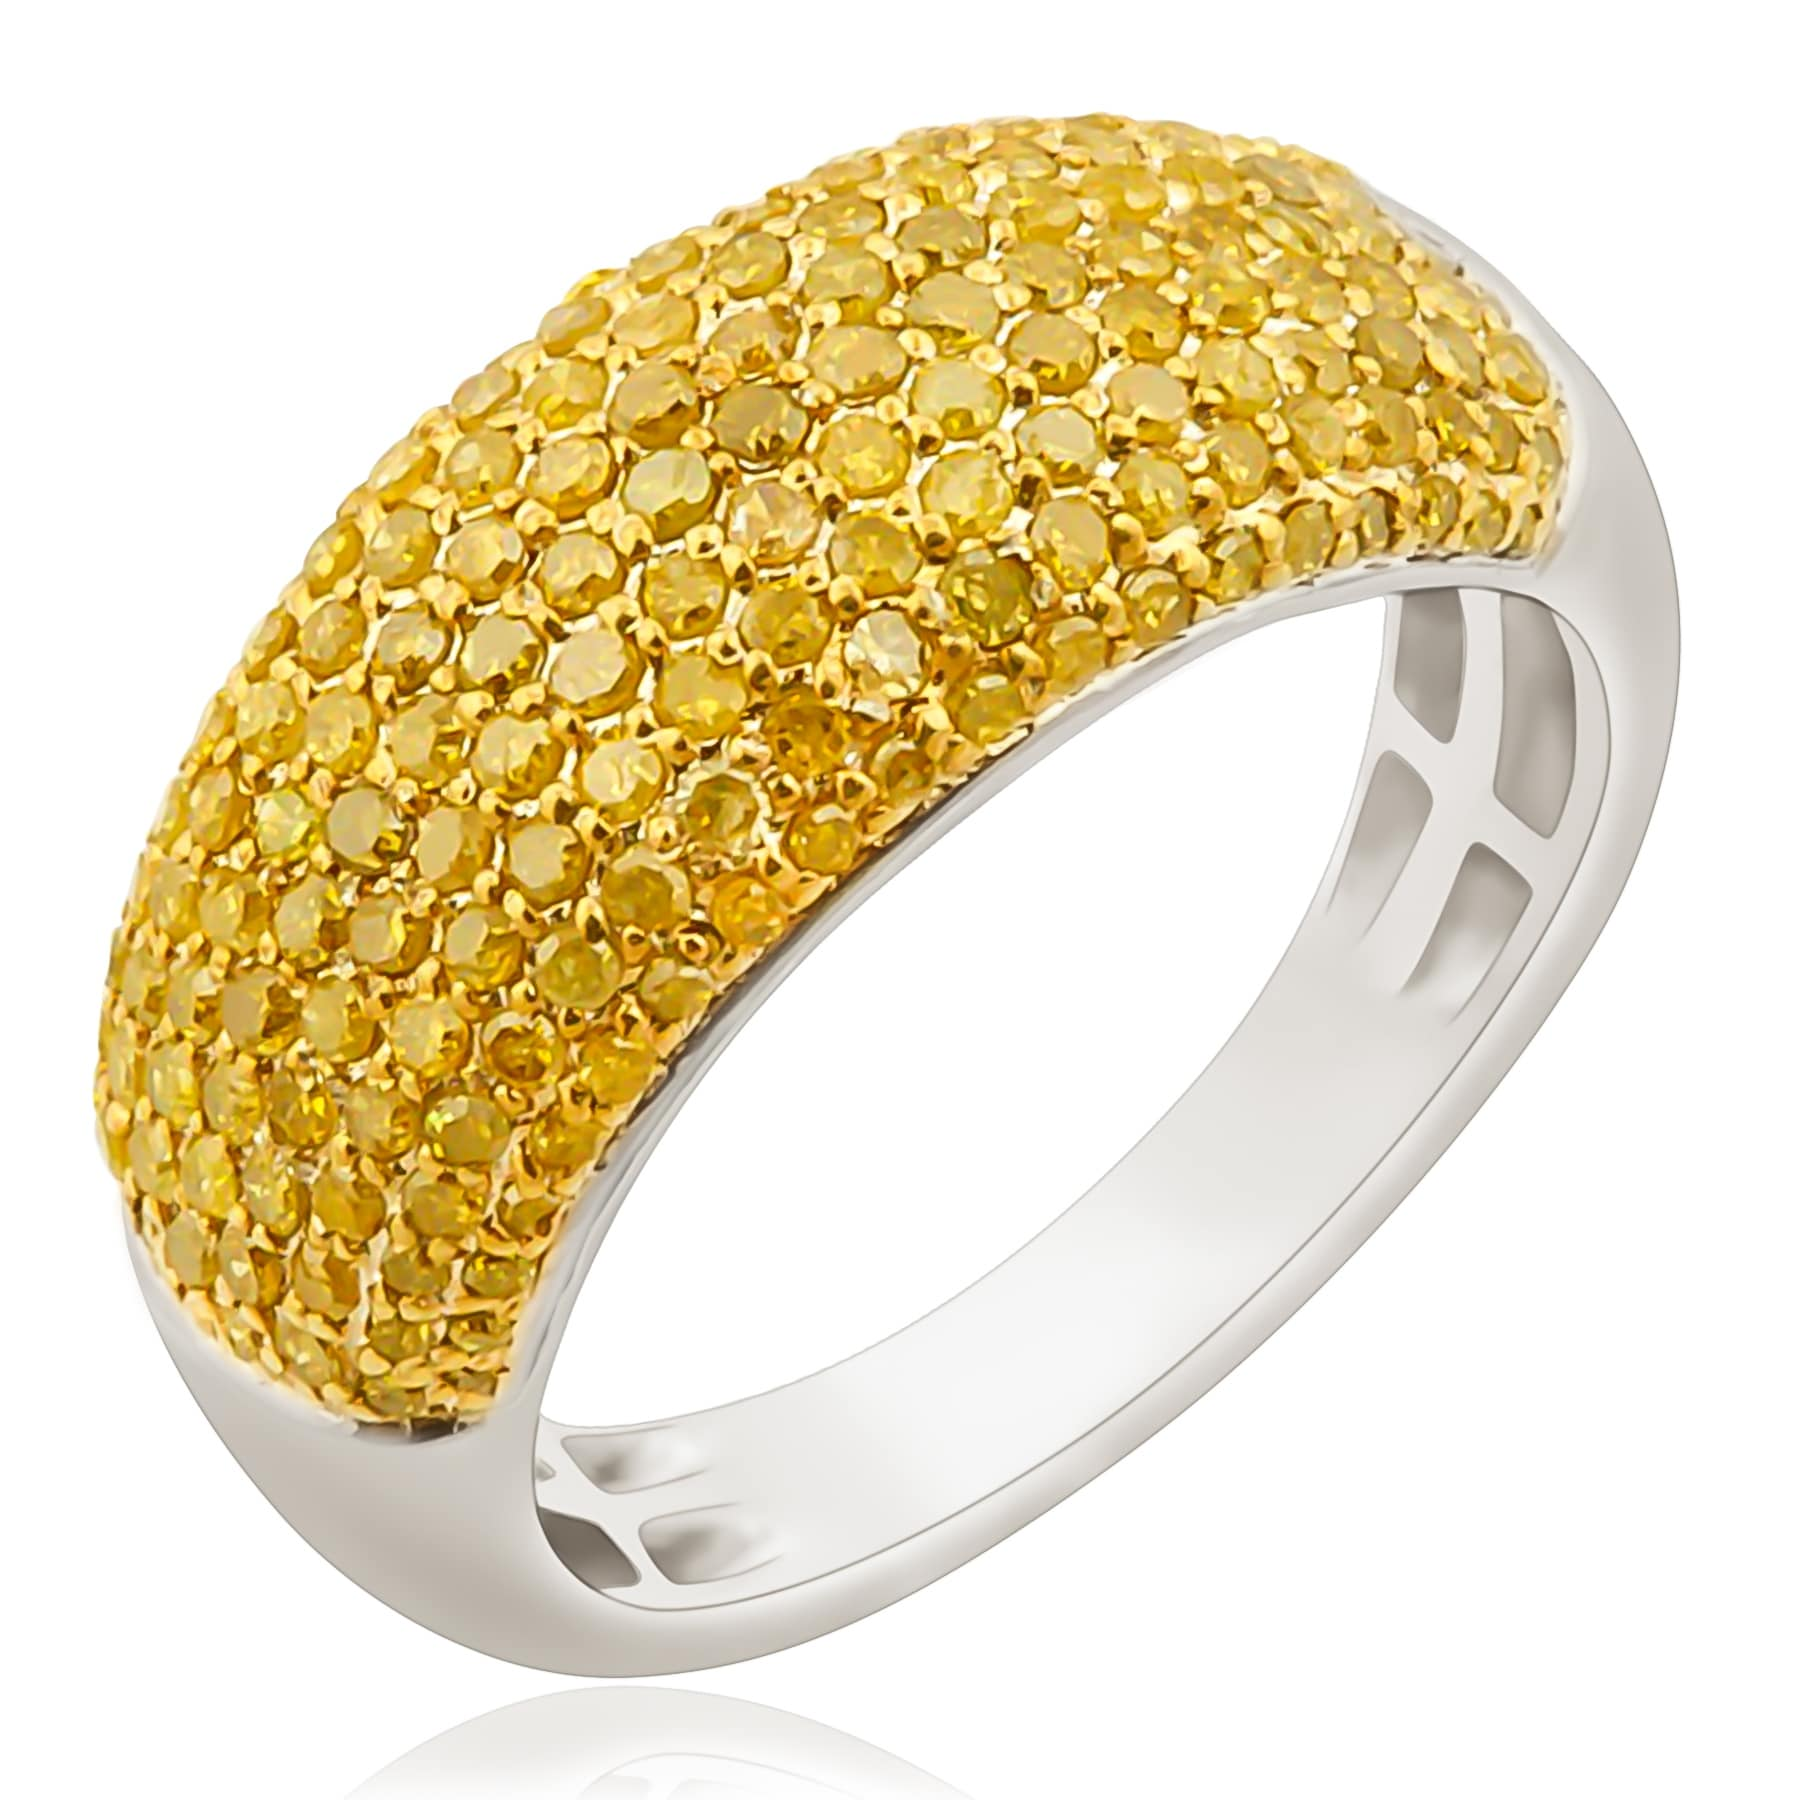 Brand New 1.02 Carat Round Brilliant Cut Yellow Color Diamond Wedding Band - Thumbnail 0